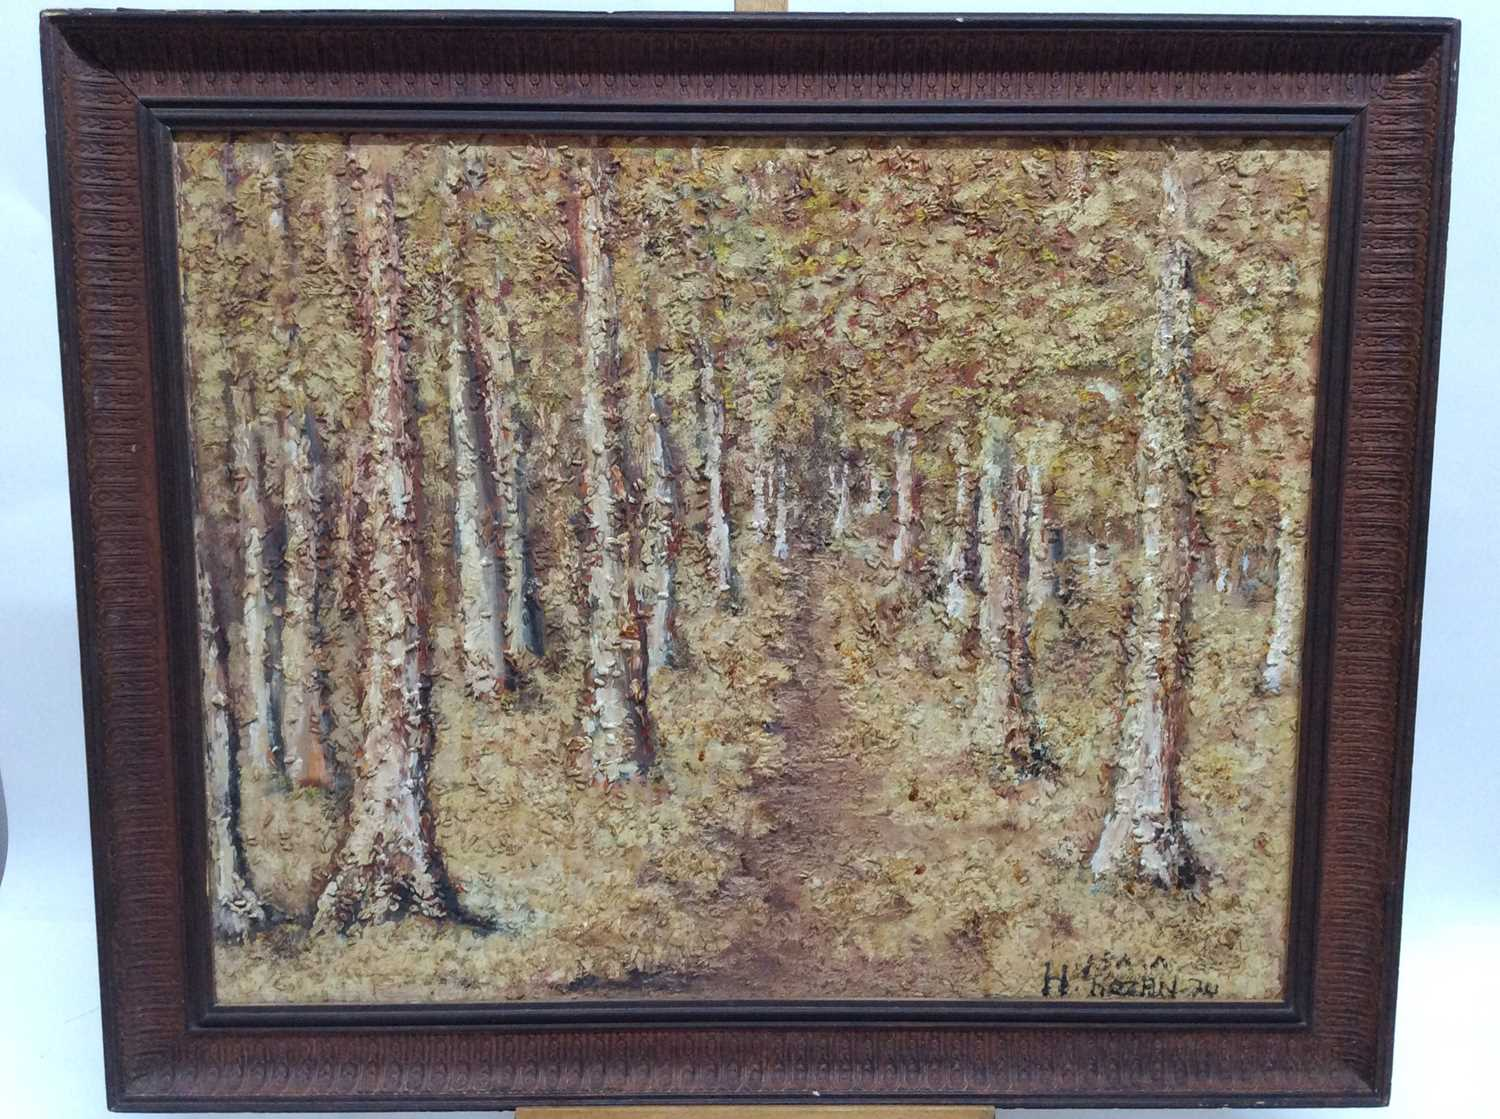 1970s mixed media on board - Avenue of Trees, indistinctly signed and dated, framed, 55cm x 69cm